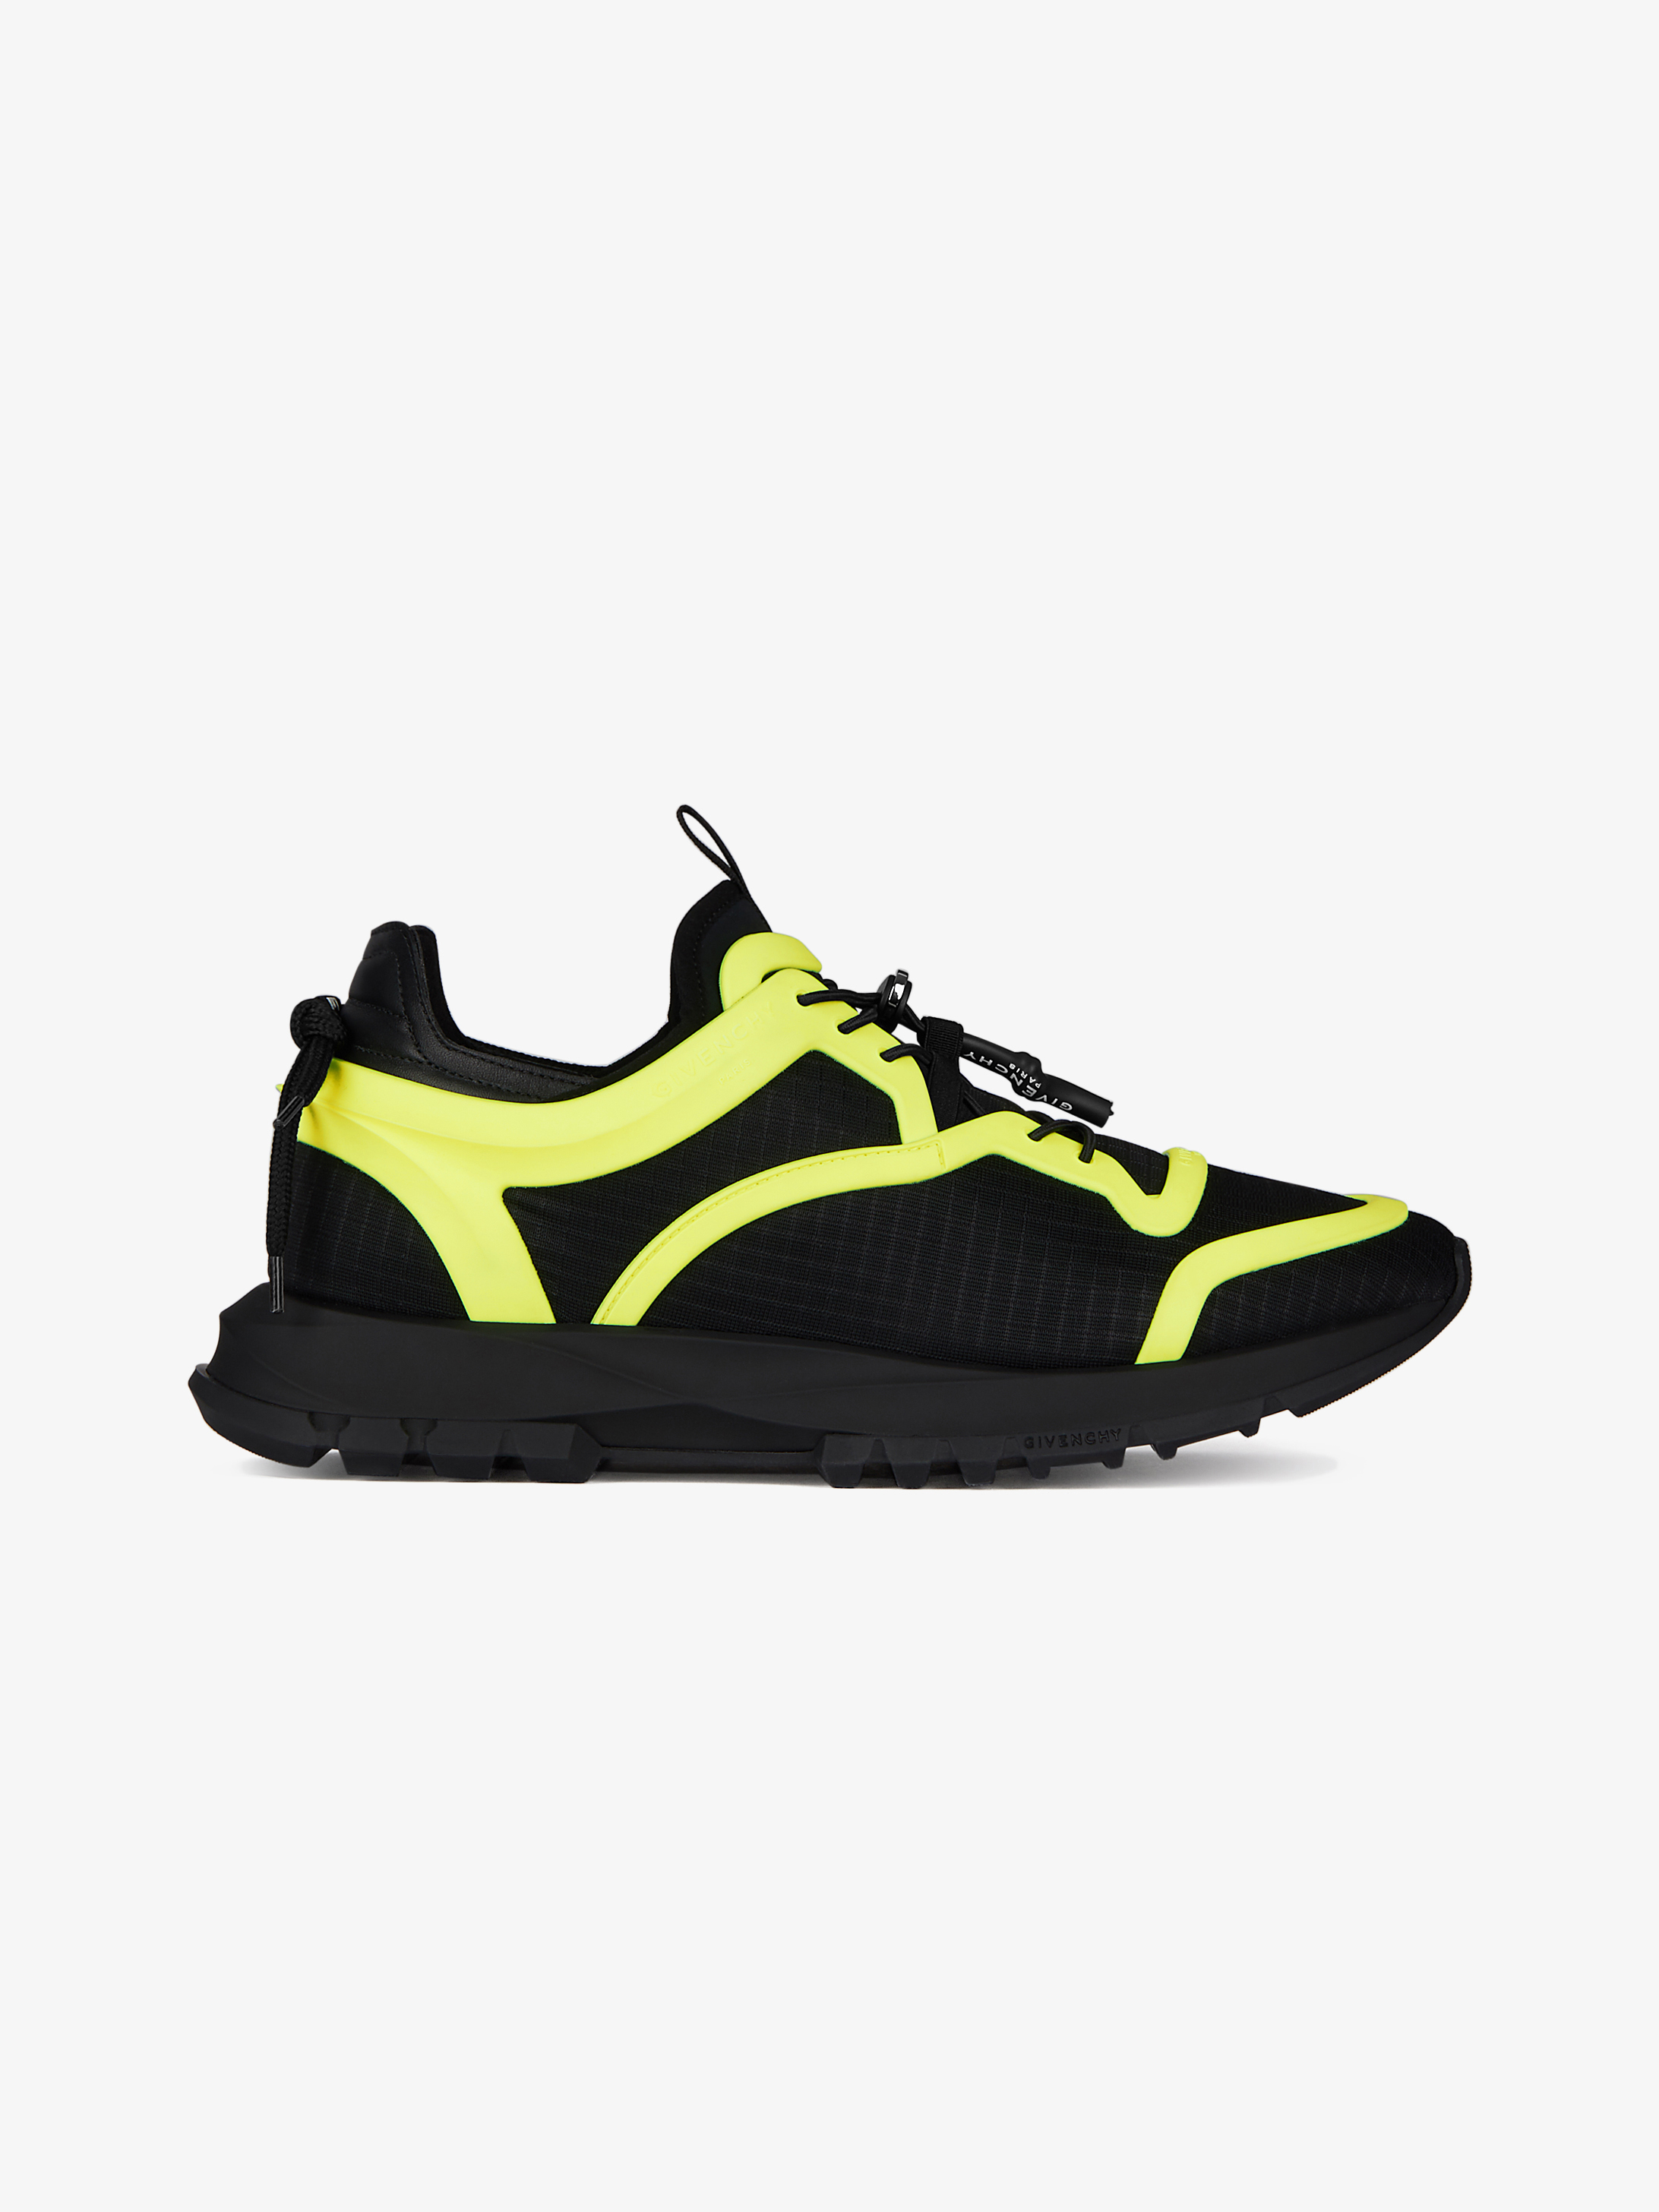 Spectre low structured runners sneakers